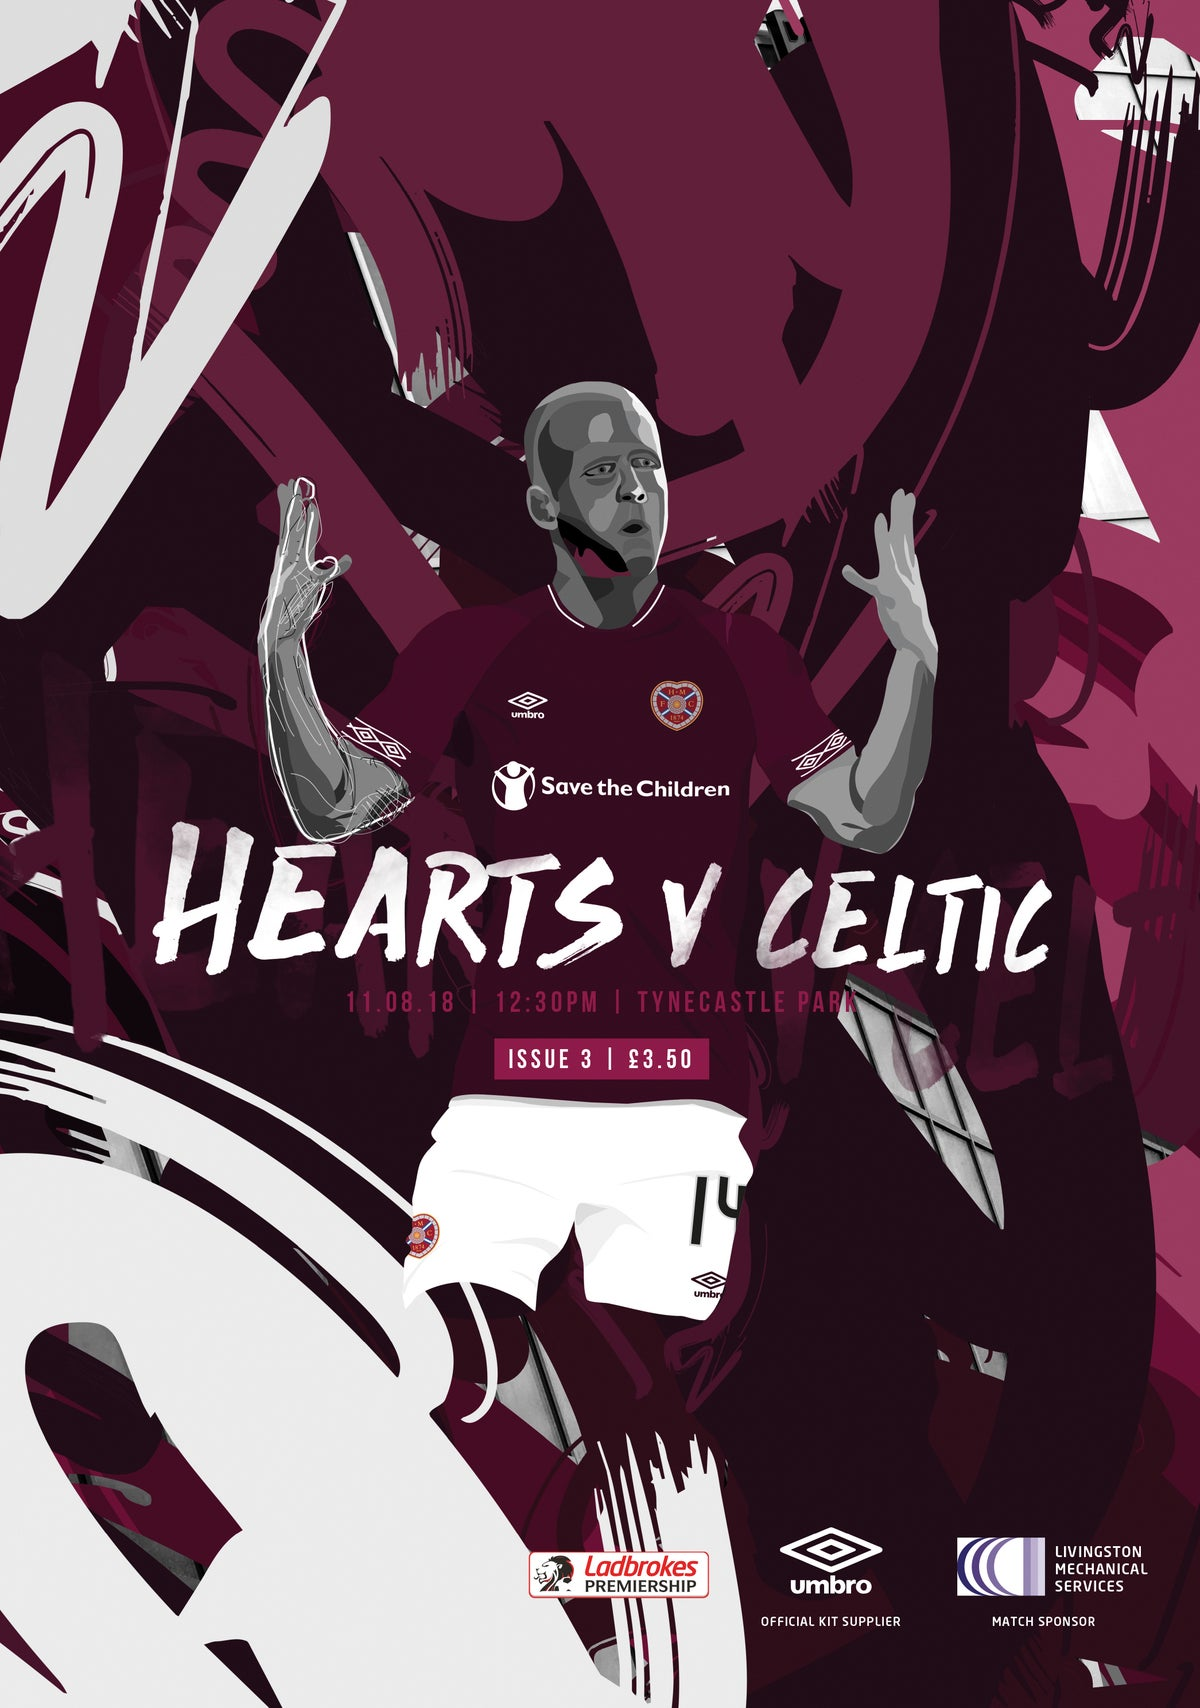 Image of Hearts v Celtic, 11th August 2018